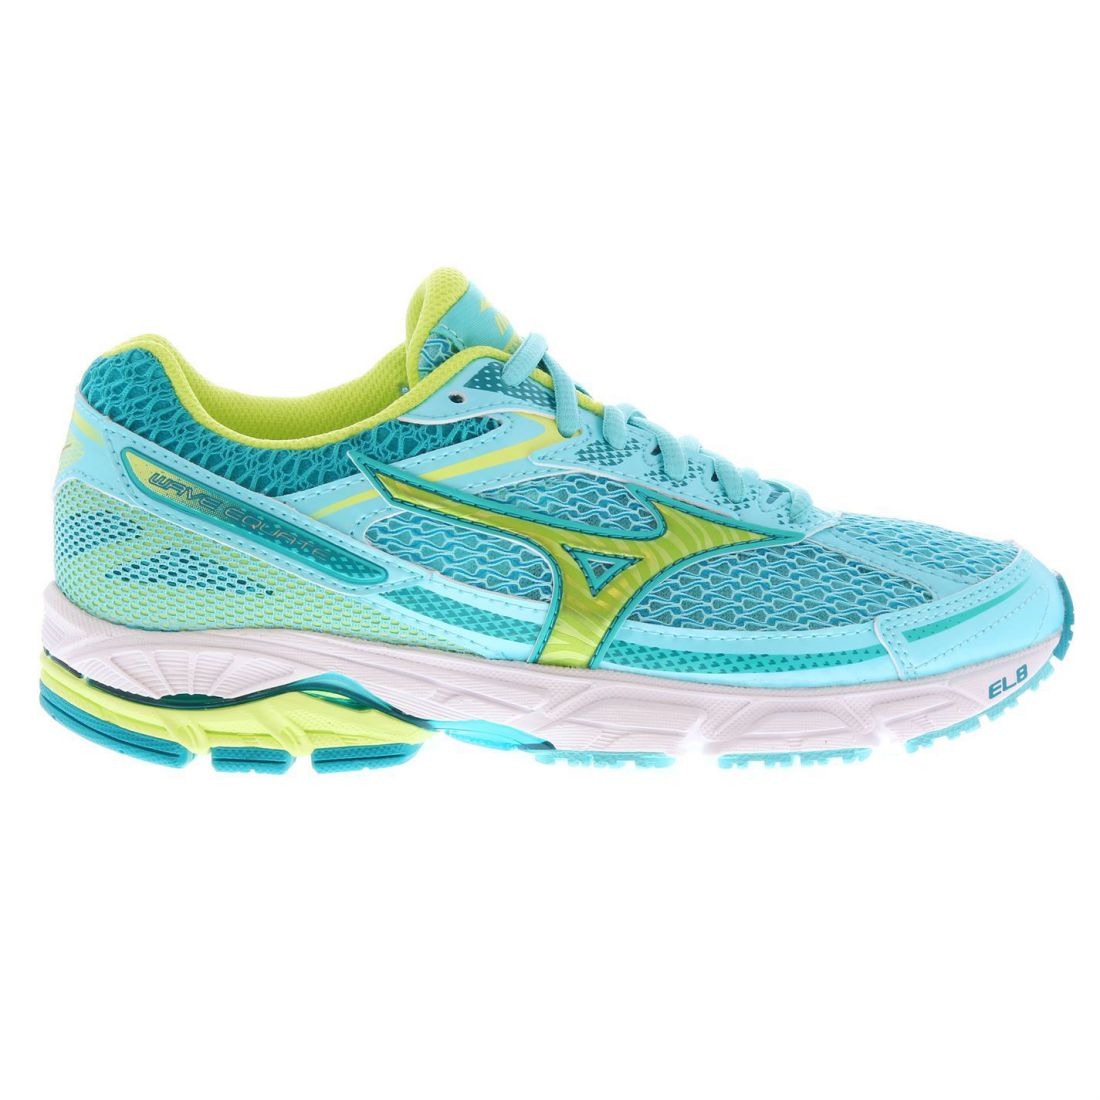 Womens Wave Equate Running shoes Road Breathable Mesh Upper